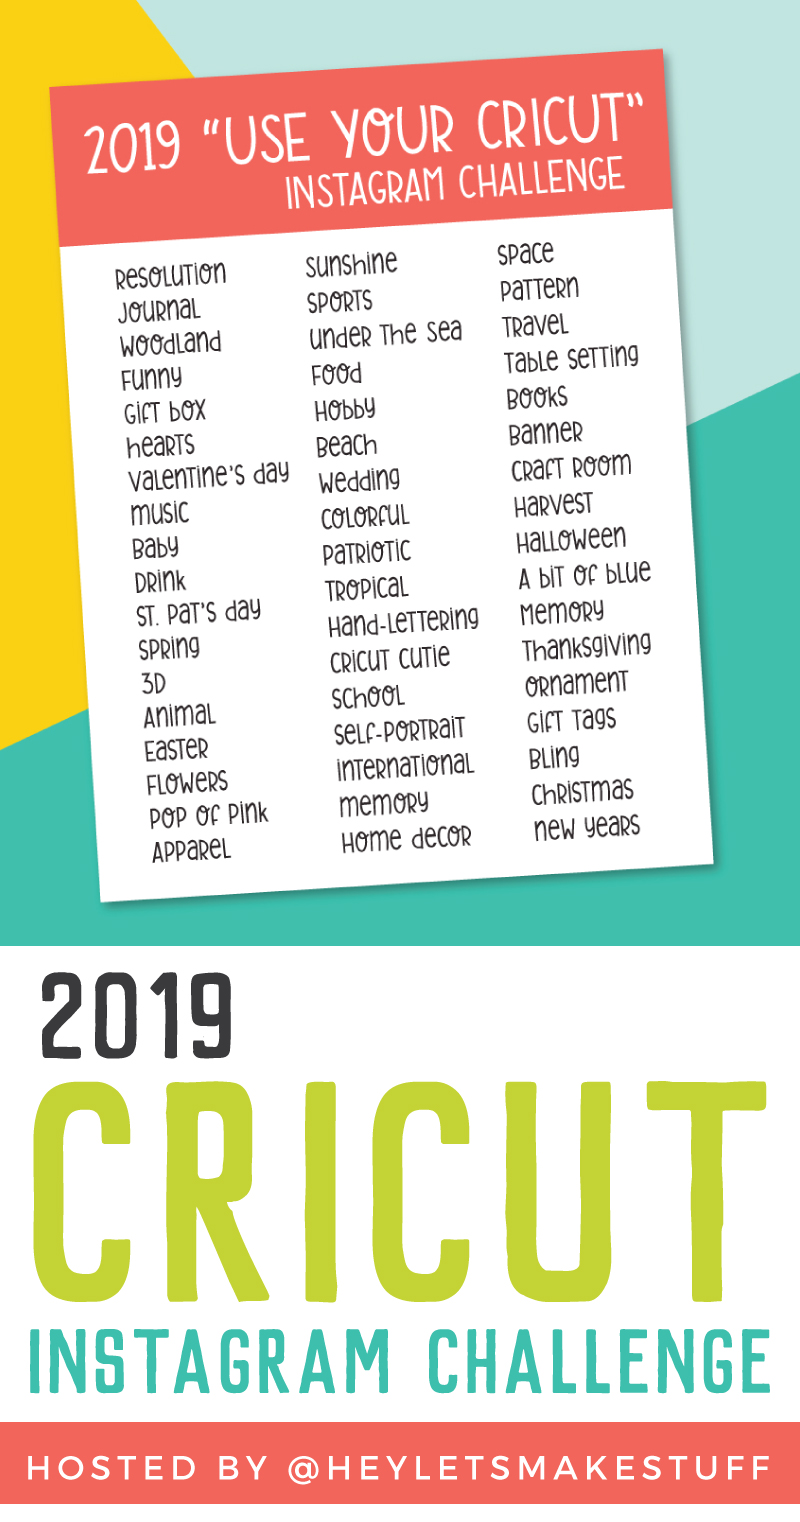 "Want an excuse to use your Cricut more? Finding yourself stuck in a rut with what you're making? The 2019 ""Use Your Cricut"" Instagram Challenge is for you! 52 weekly inspiration prompts, Instagram features, prizes, and more!"